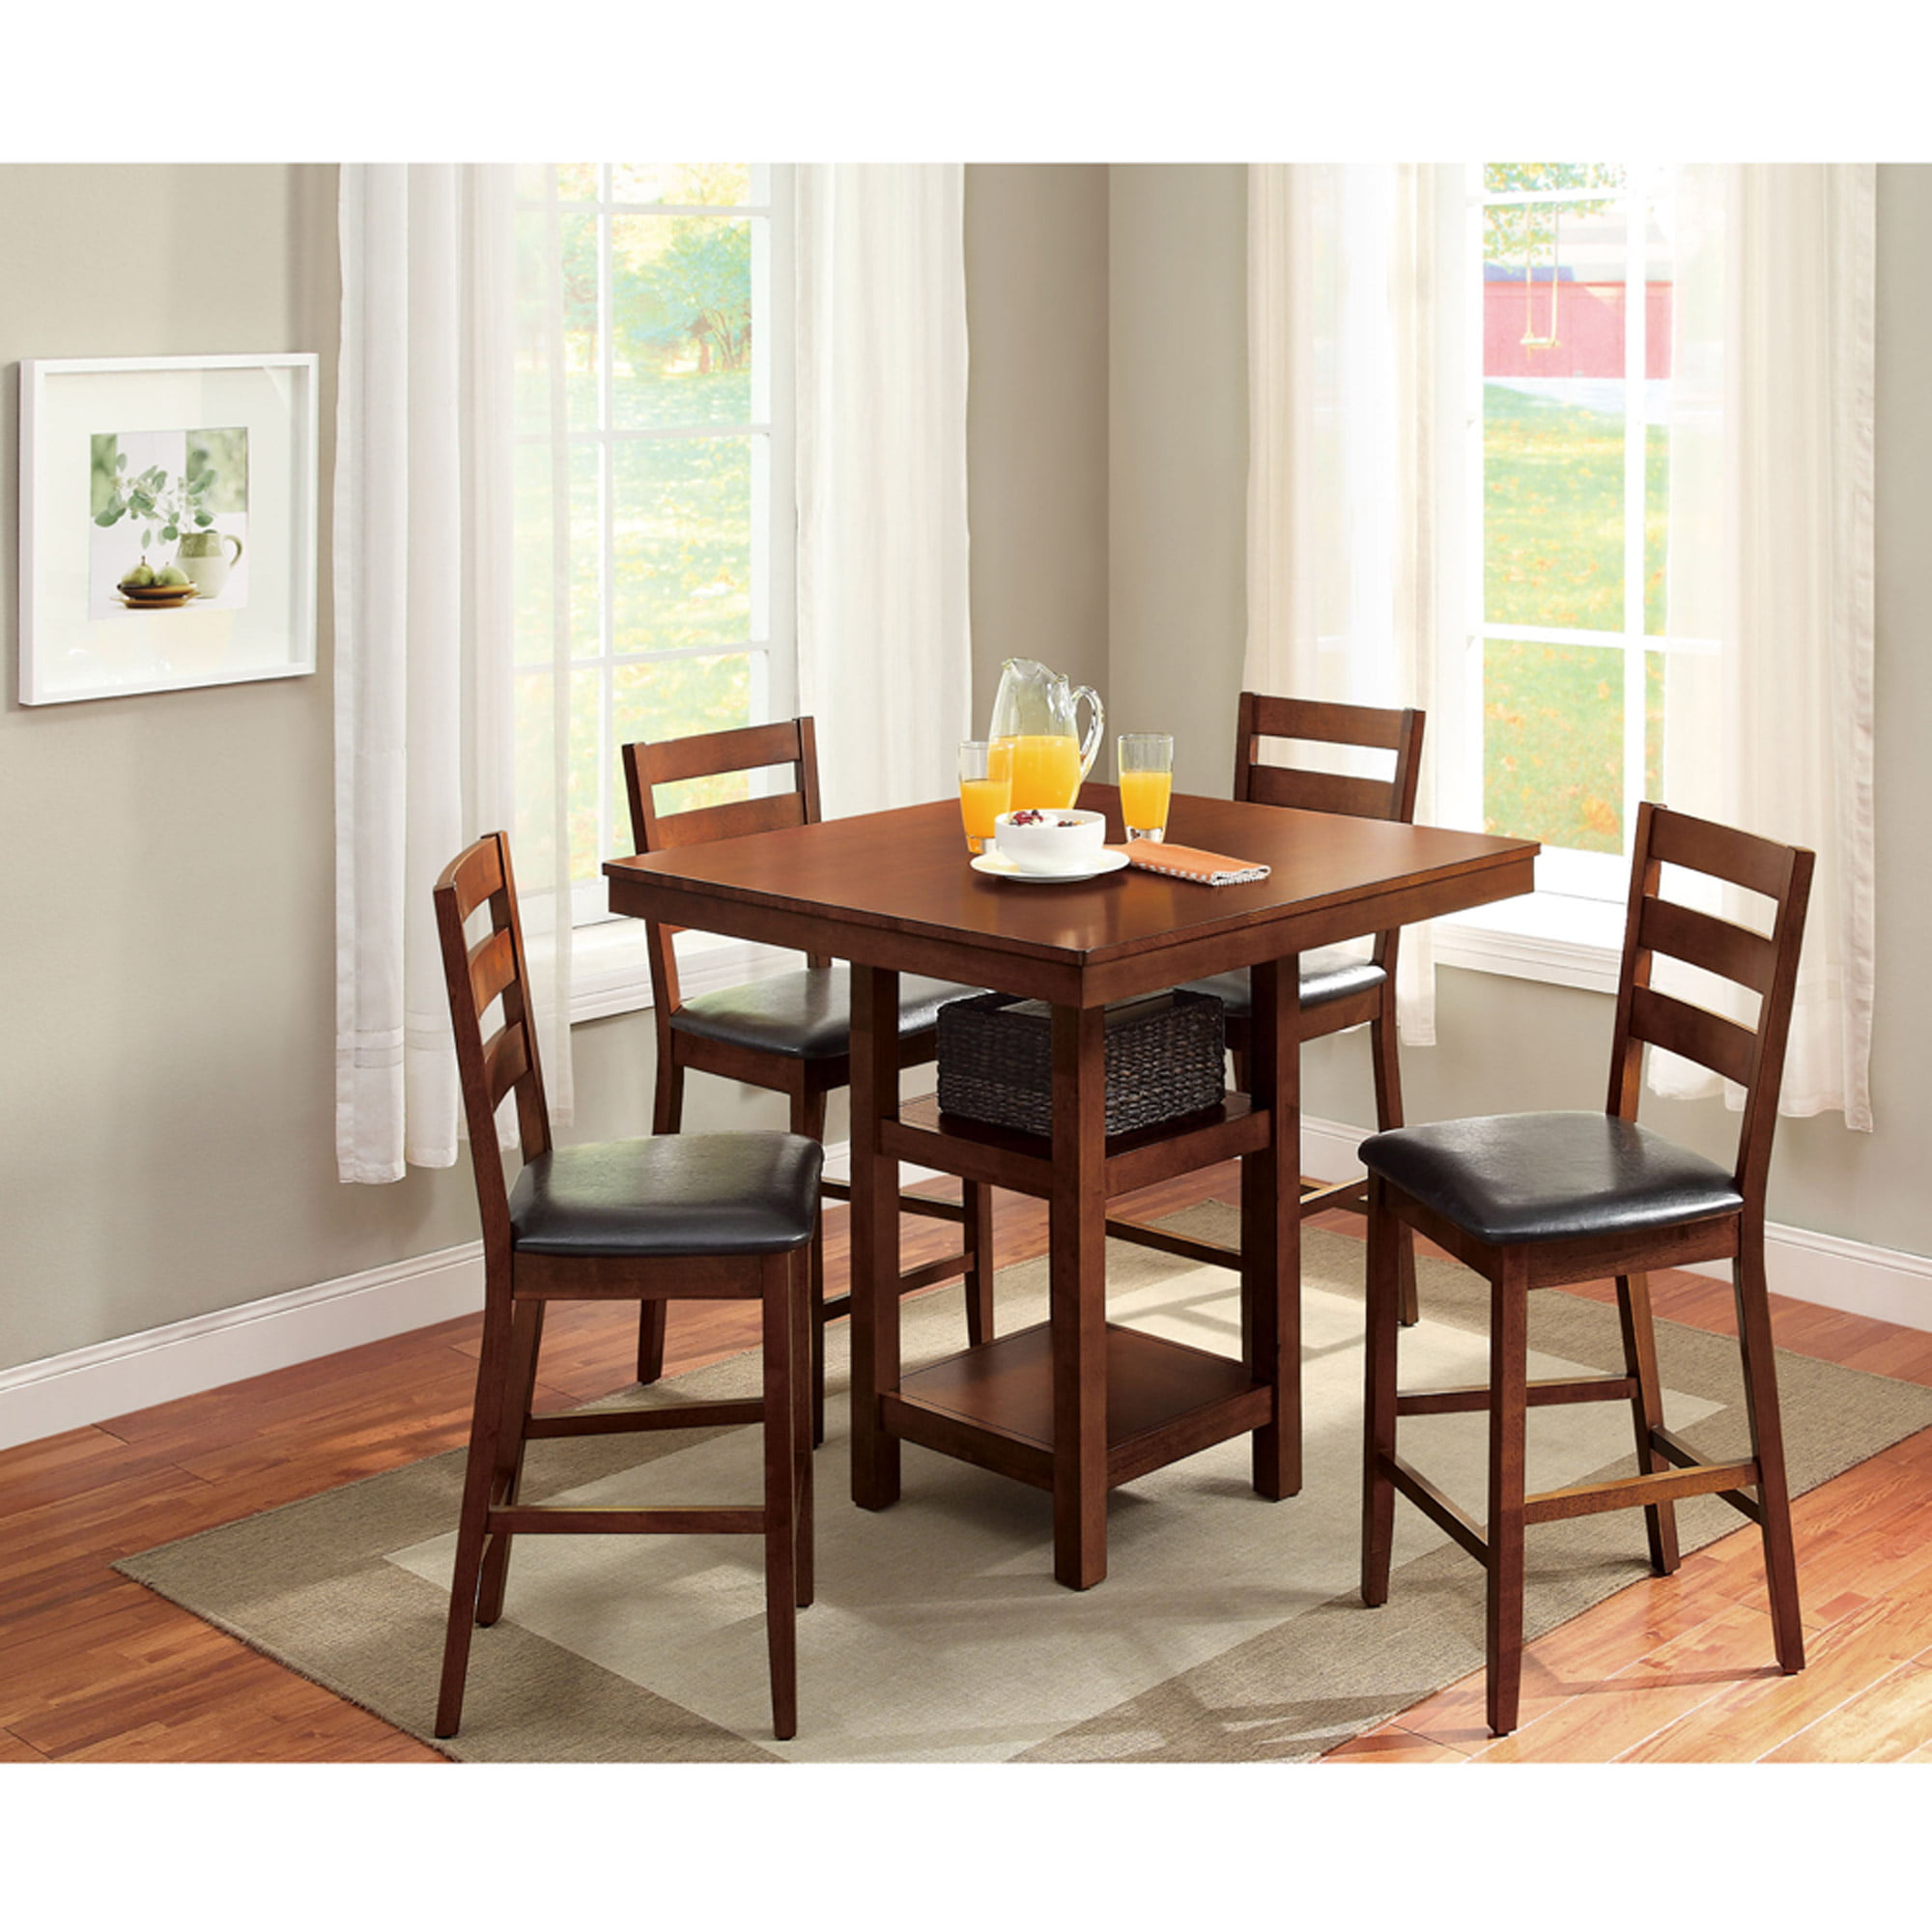 walmart dining room sets Better Homes & Gardens Dalton Park 5 Piece Counter Height Dining  walmart dining room sets